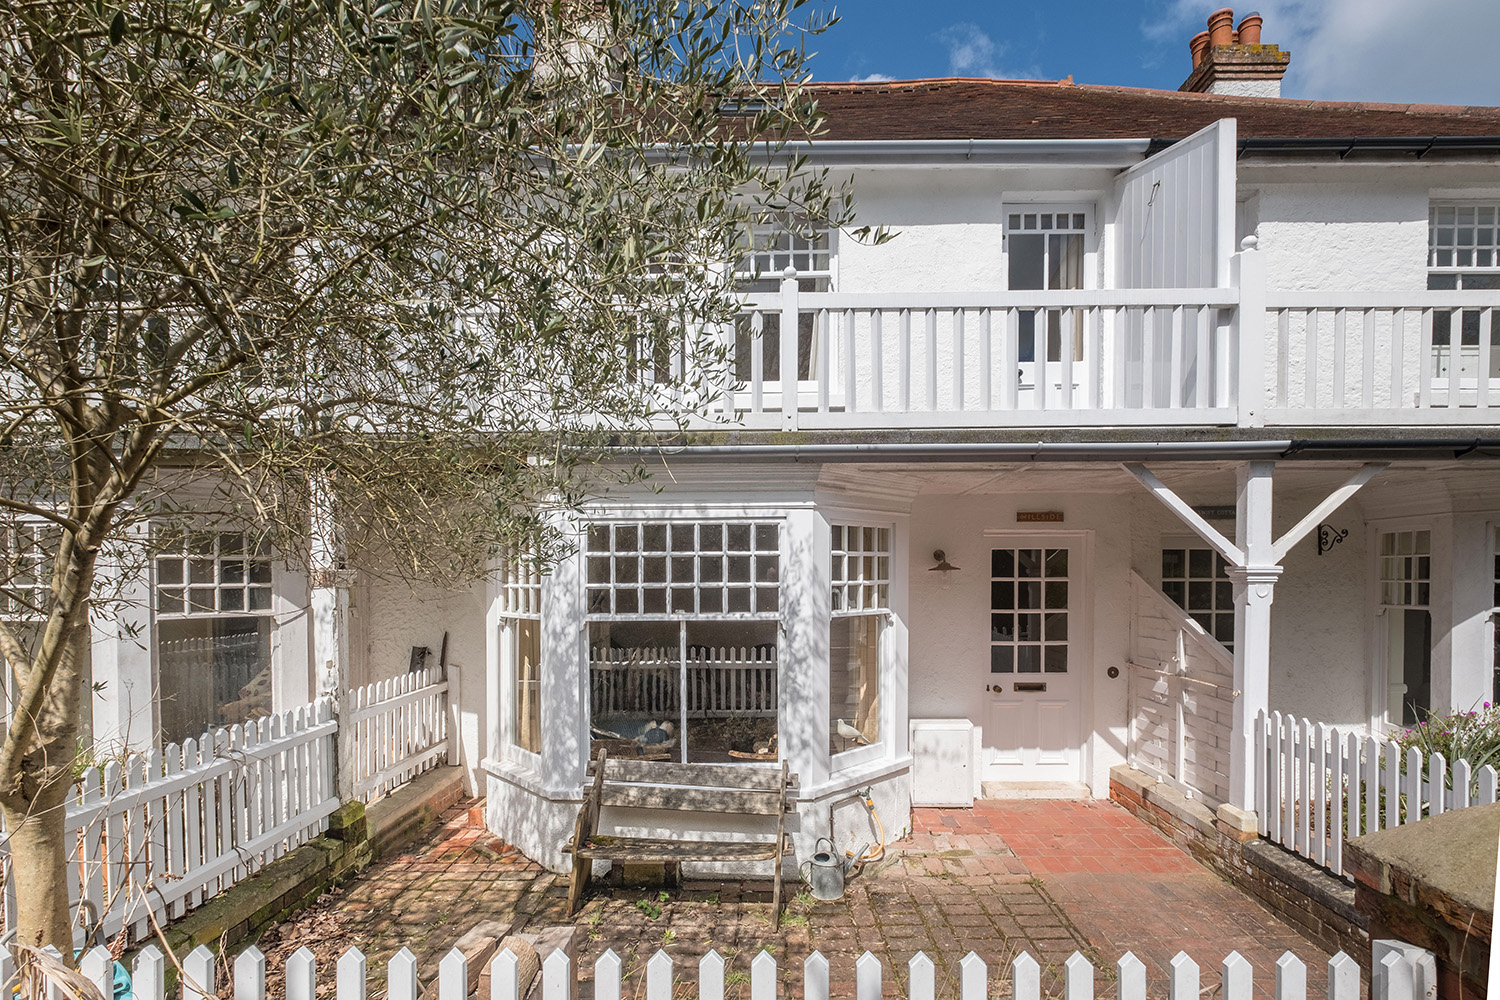 Seagrove Bay 5-bedroom house for sale on the Isle of Wight